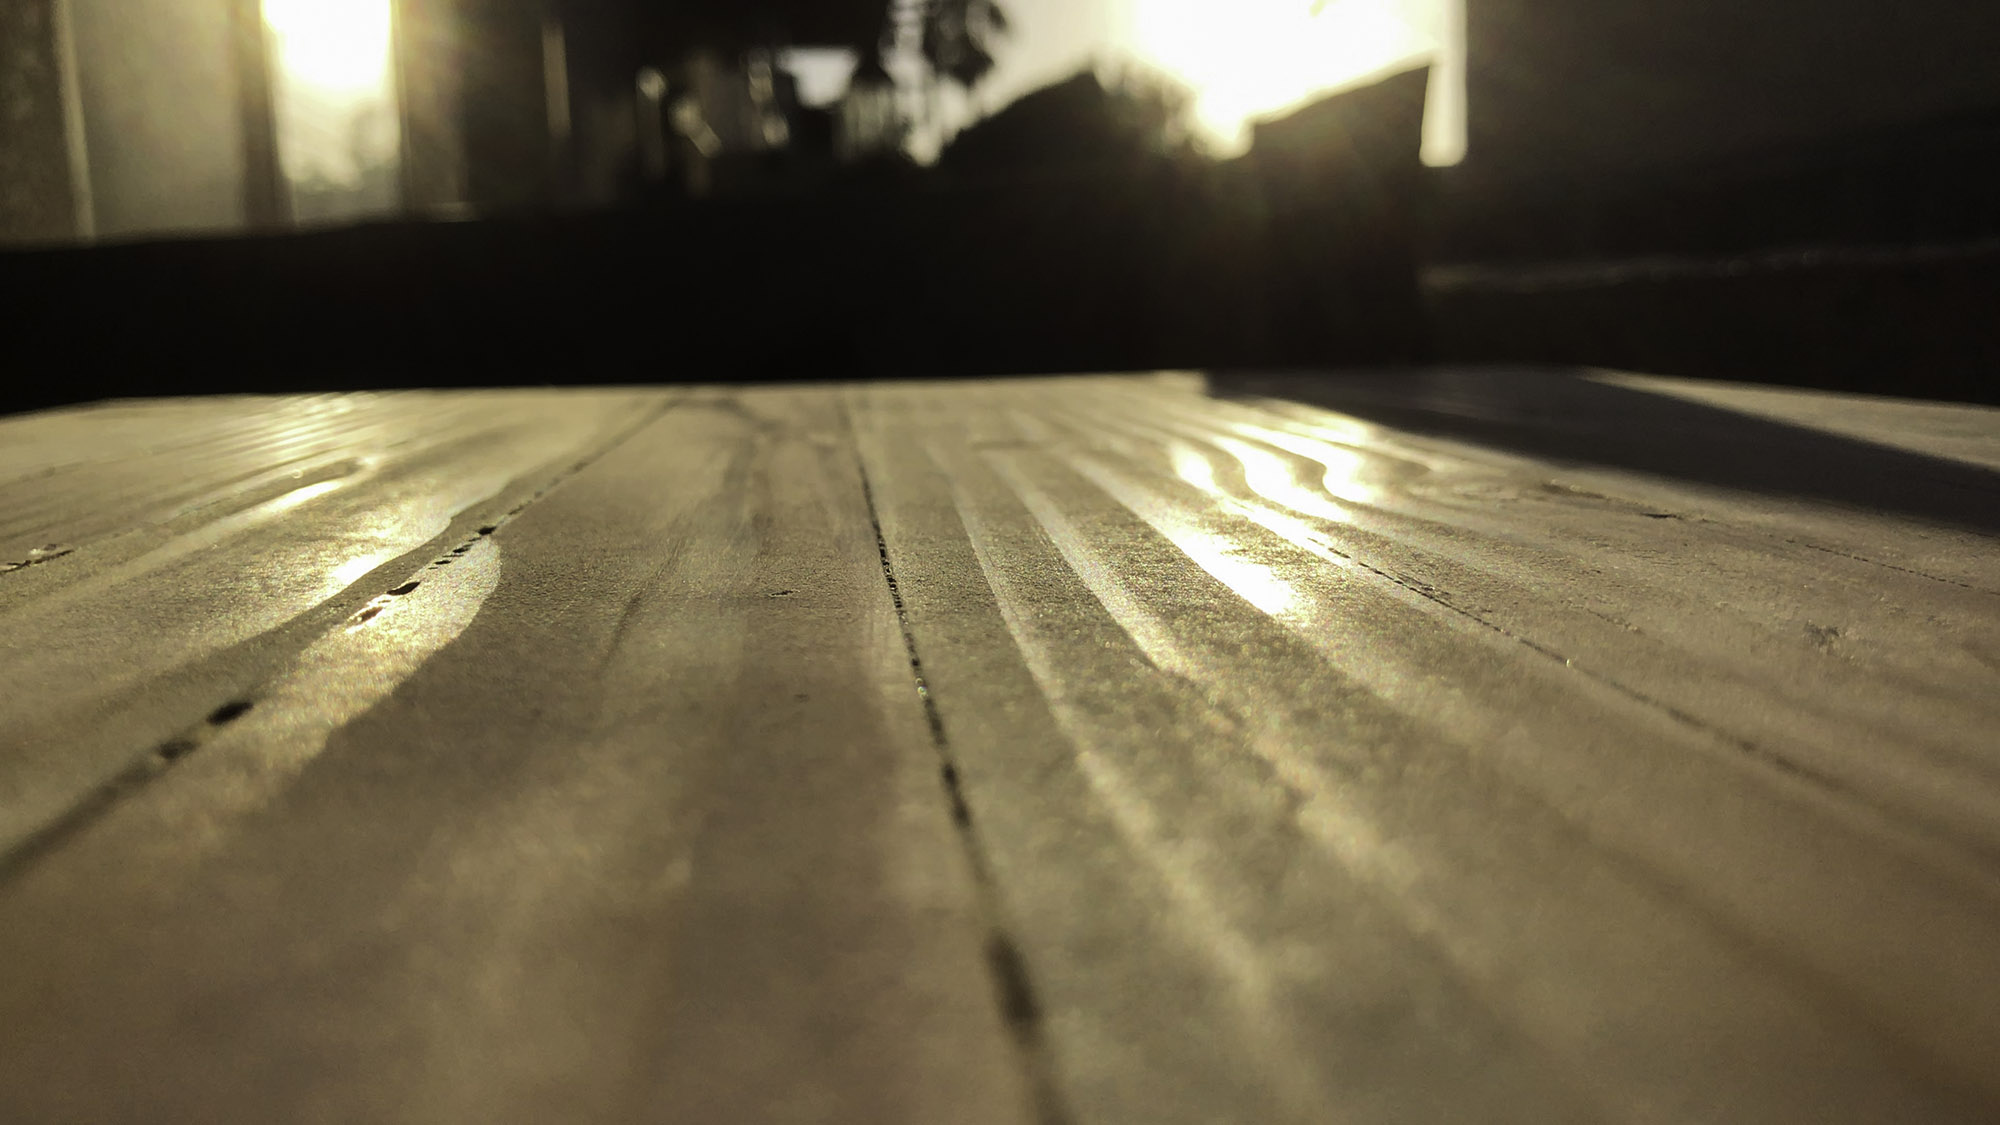 Woodworking bench lit up by warm evening sun